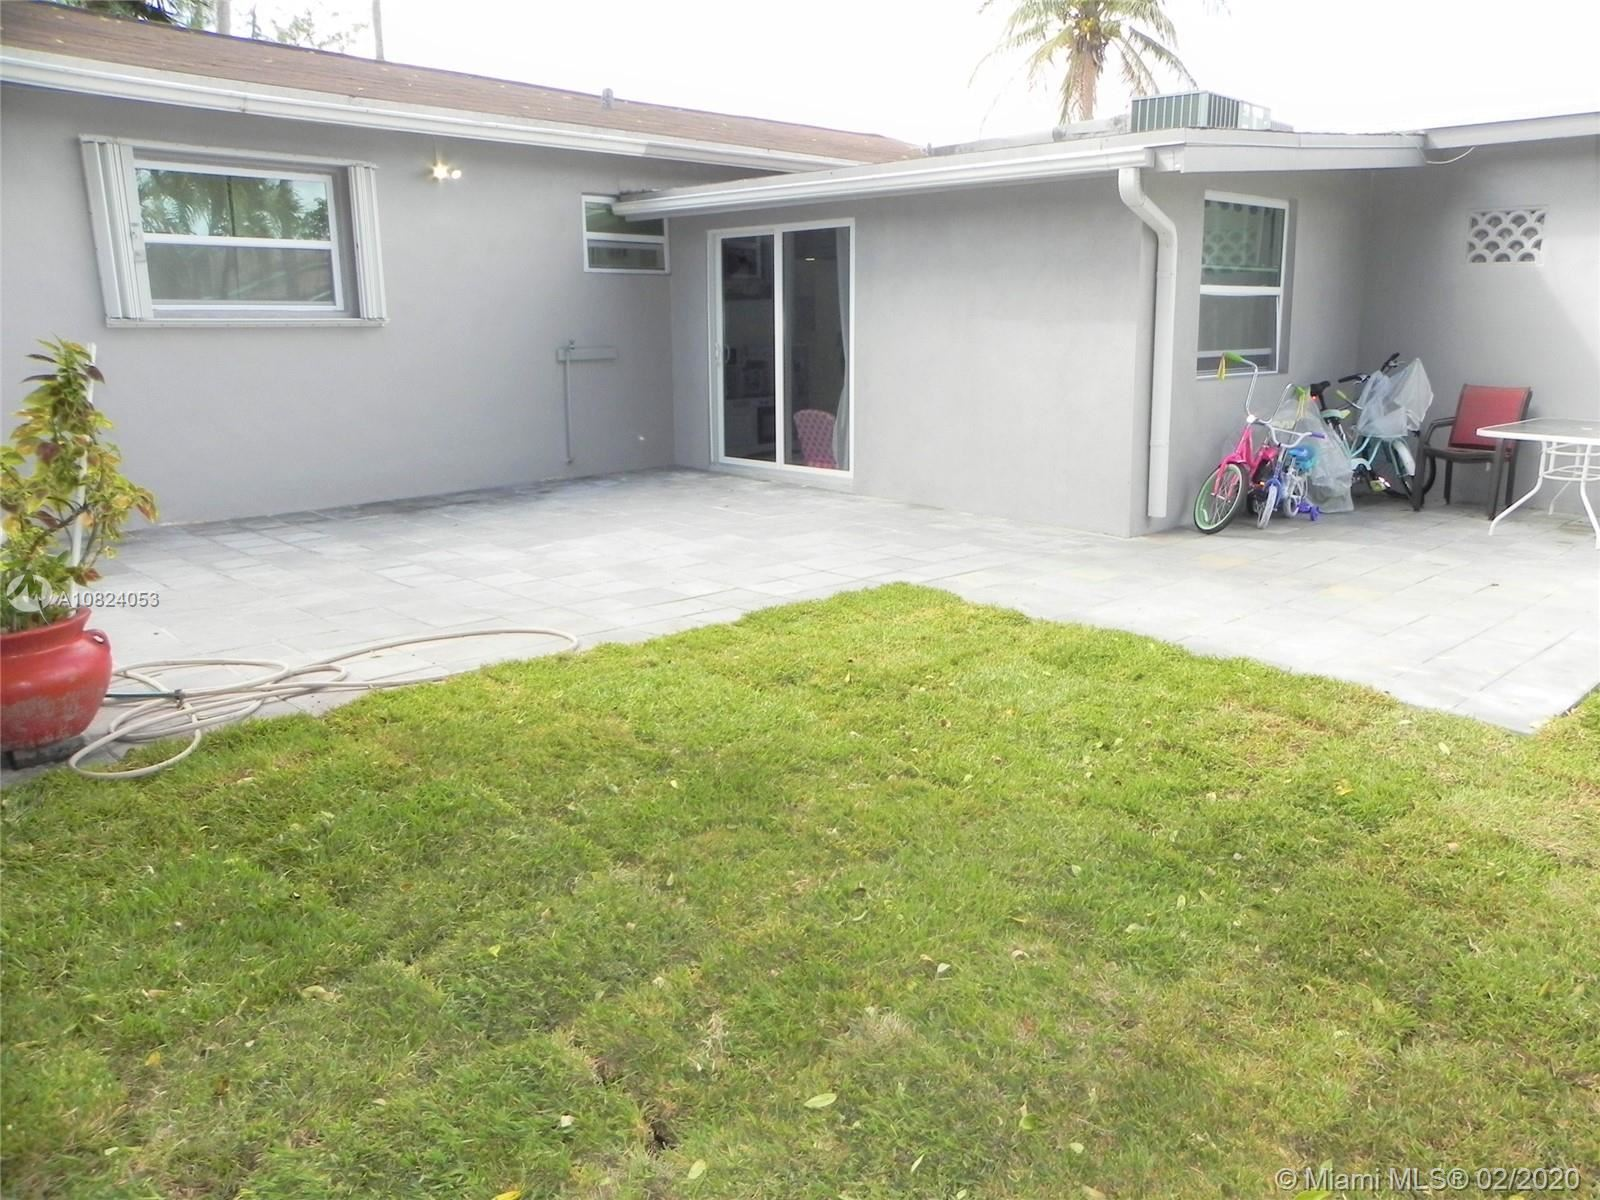 Photo 20 of Listing MLS a10824053 in 1531 Johnson St Hollywood FL 33020